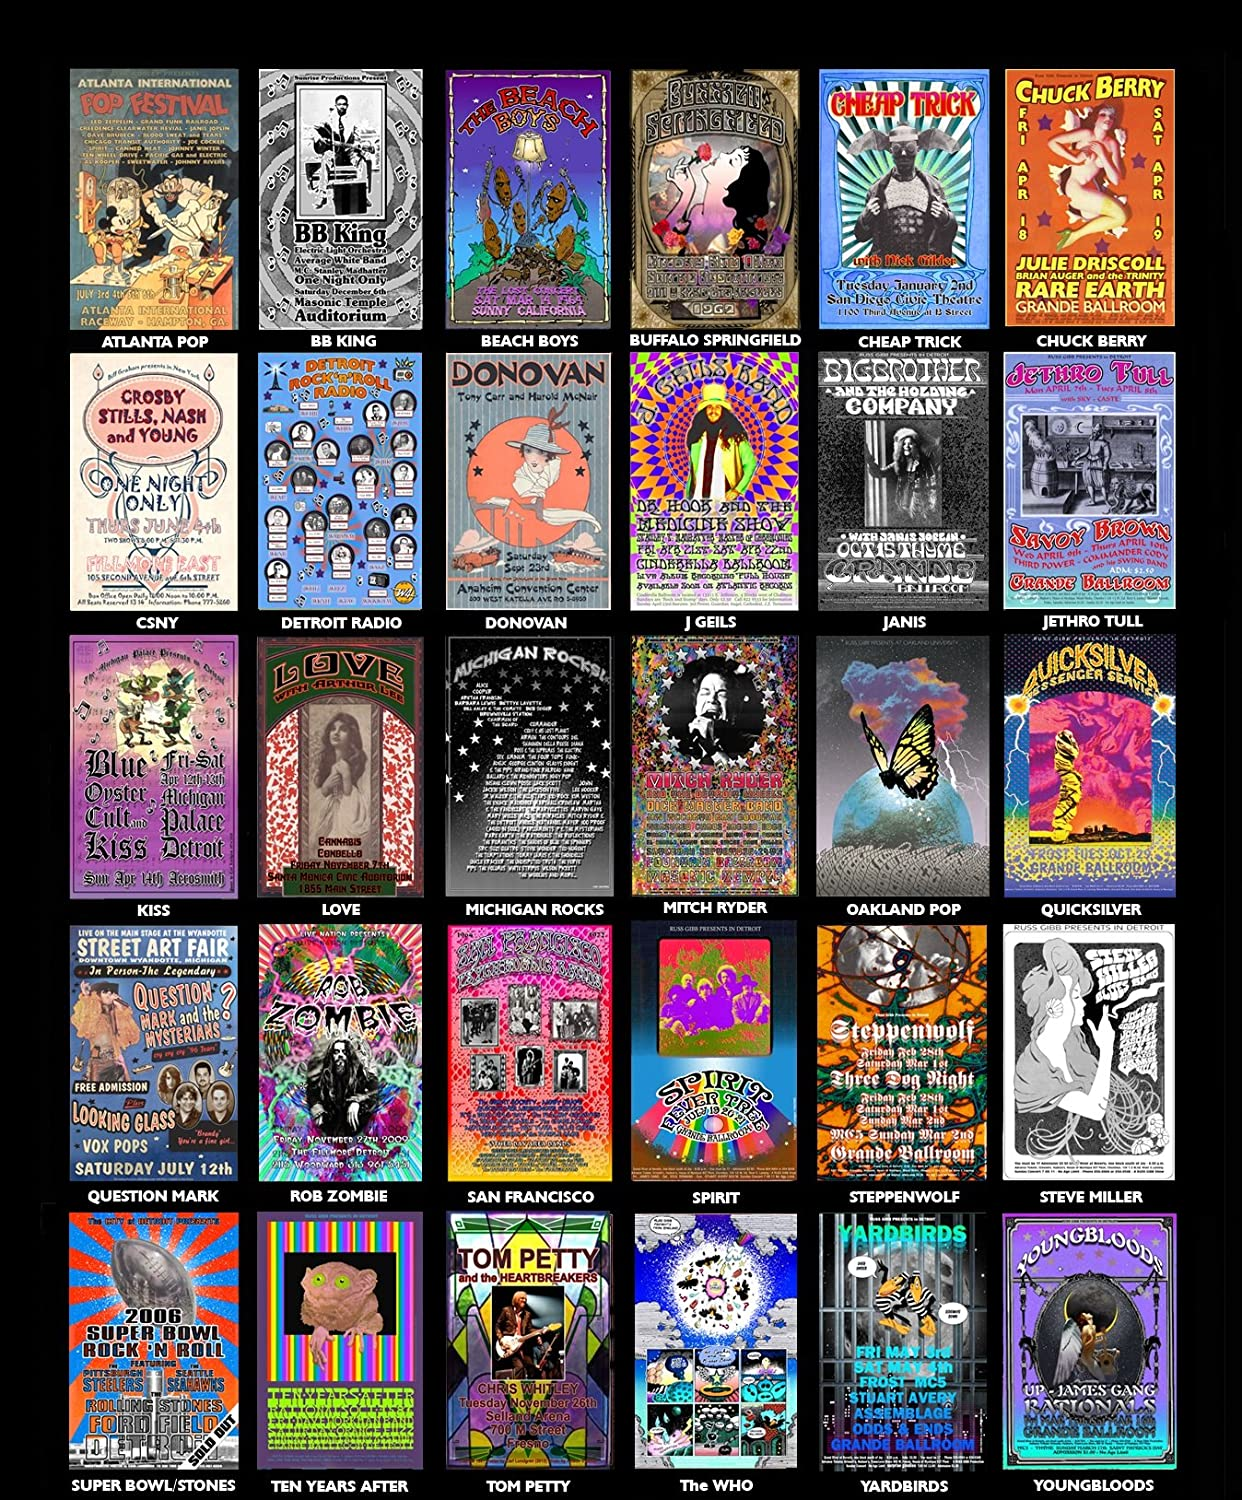 Saugatuck MC5 Amboy Dukes Bob Seger Stooges Concert 1969 Poster 13 X 19 Ready for Display Bagged and Boarded by Grande Ballroom Poster Artist Carl Lundgren Printed in Detroit MI USA Shipped Flat